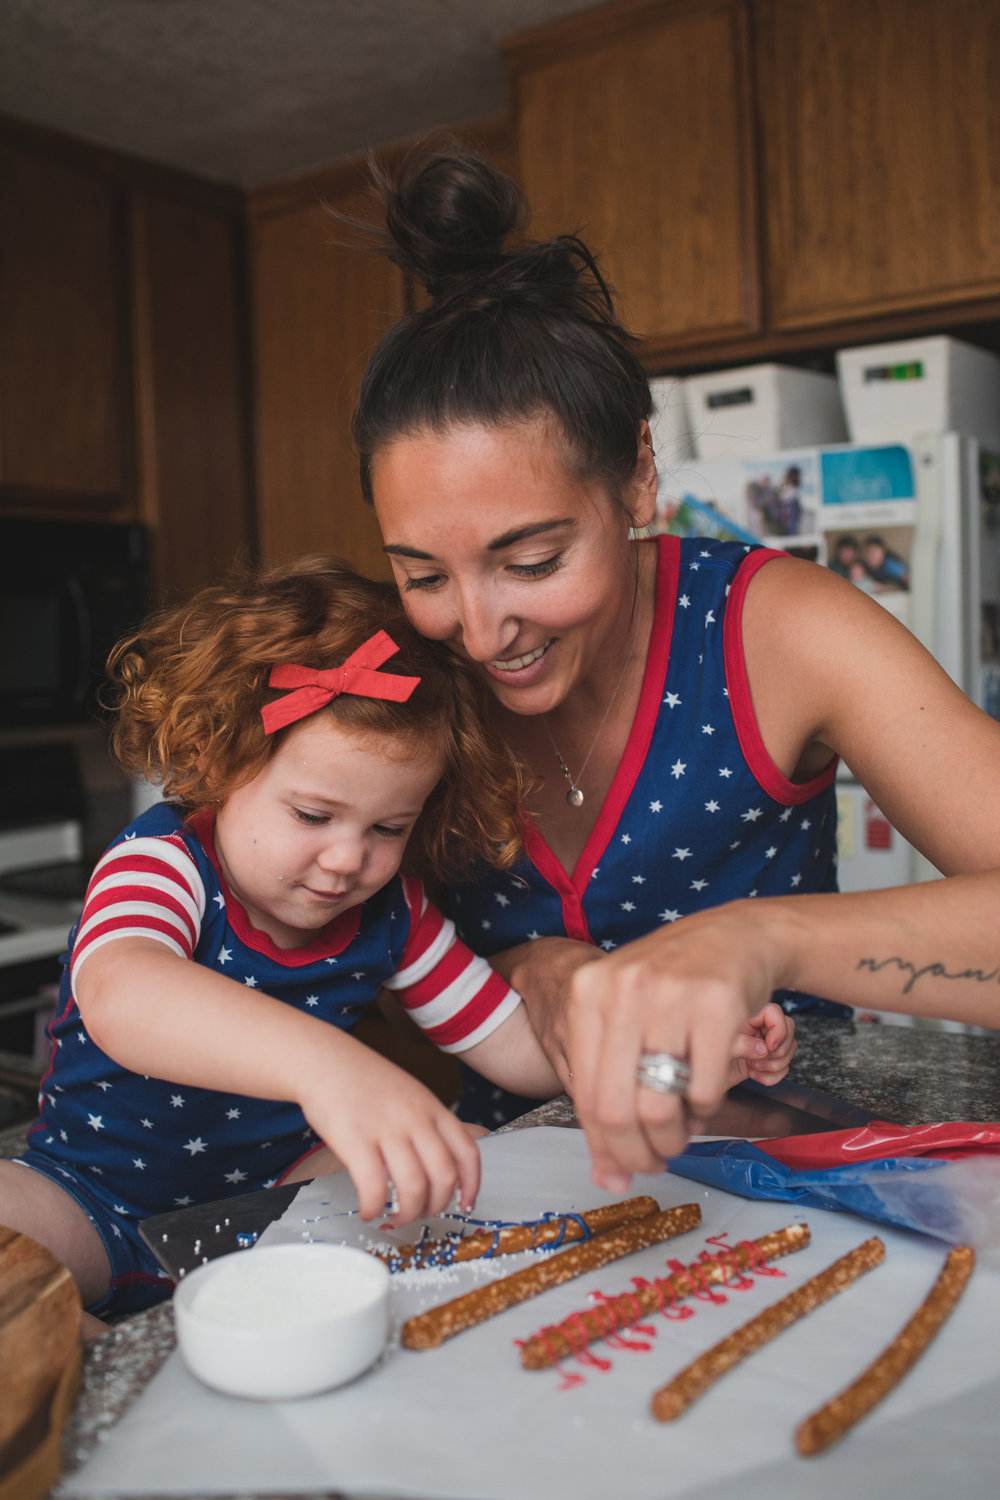 Baby_Boy_Bakery_Fourth_of_July_Lily_Ro_Photography-8584.jpg